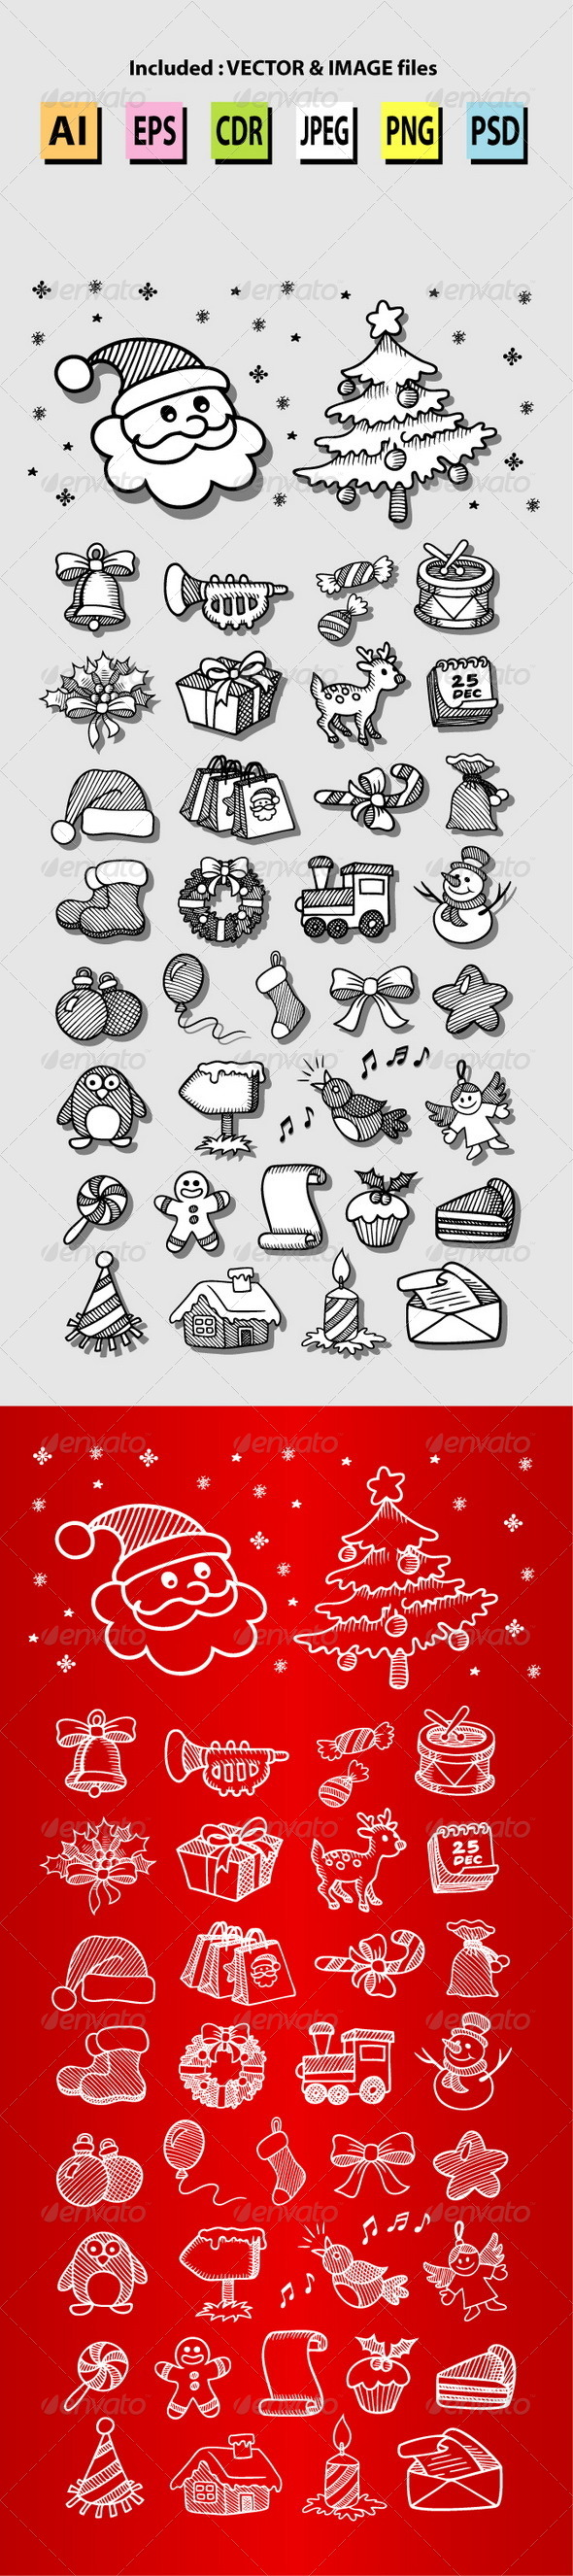 GraphicRiver Set of Christmas Icon Sketches 6055693